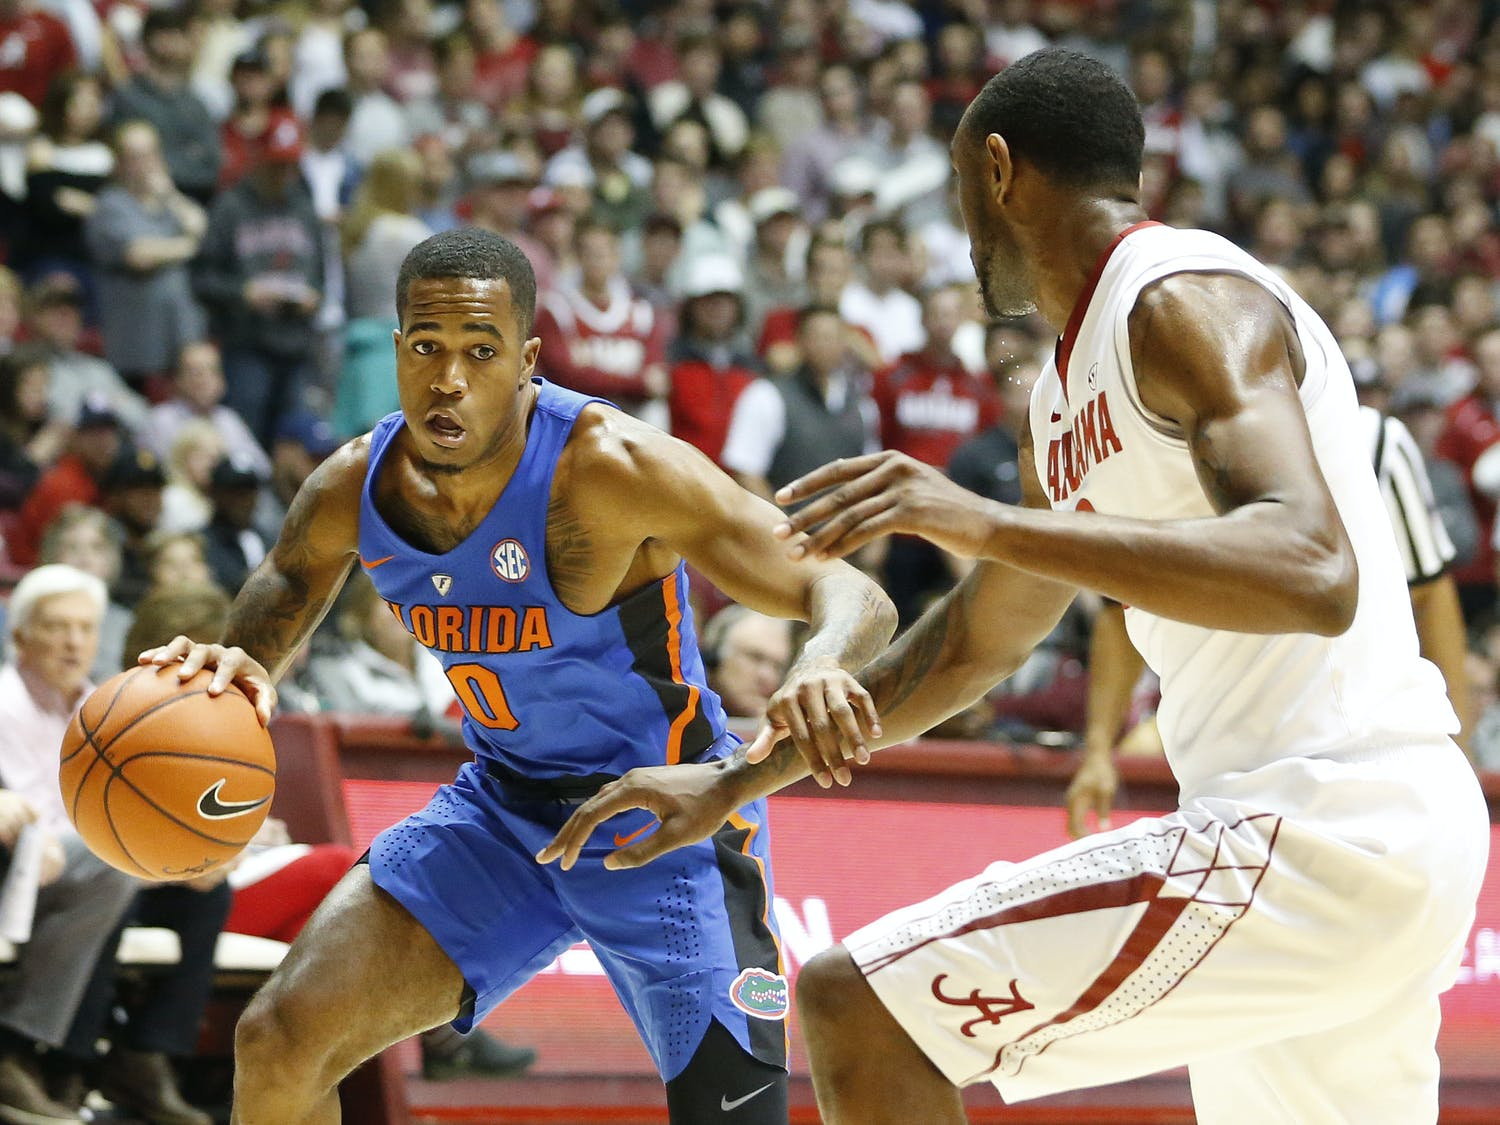 Florida guard Kasey Hill drives the ball against Alabama forward Jimmie Taylor during the first half of an NCAA college basketball game, Tuesday, Jan. 10, 2017, in Tuscaloosa, Ala. (AP Photo/Brynn Anderson)